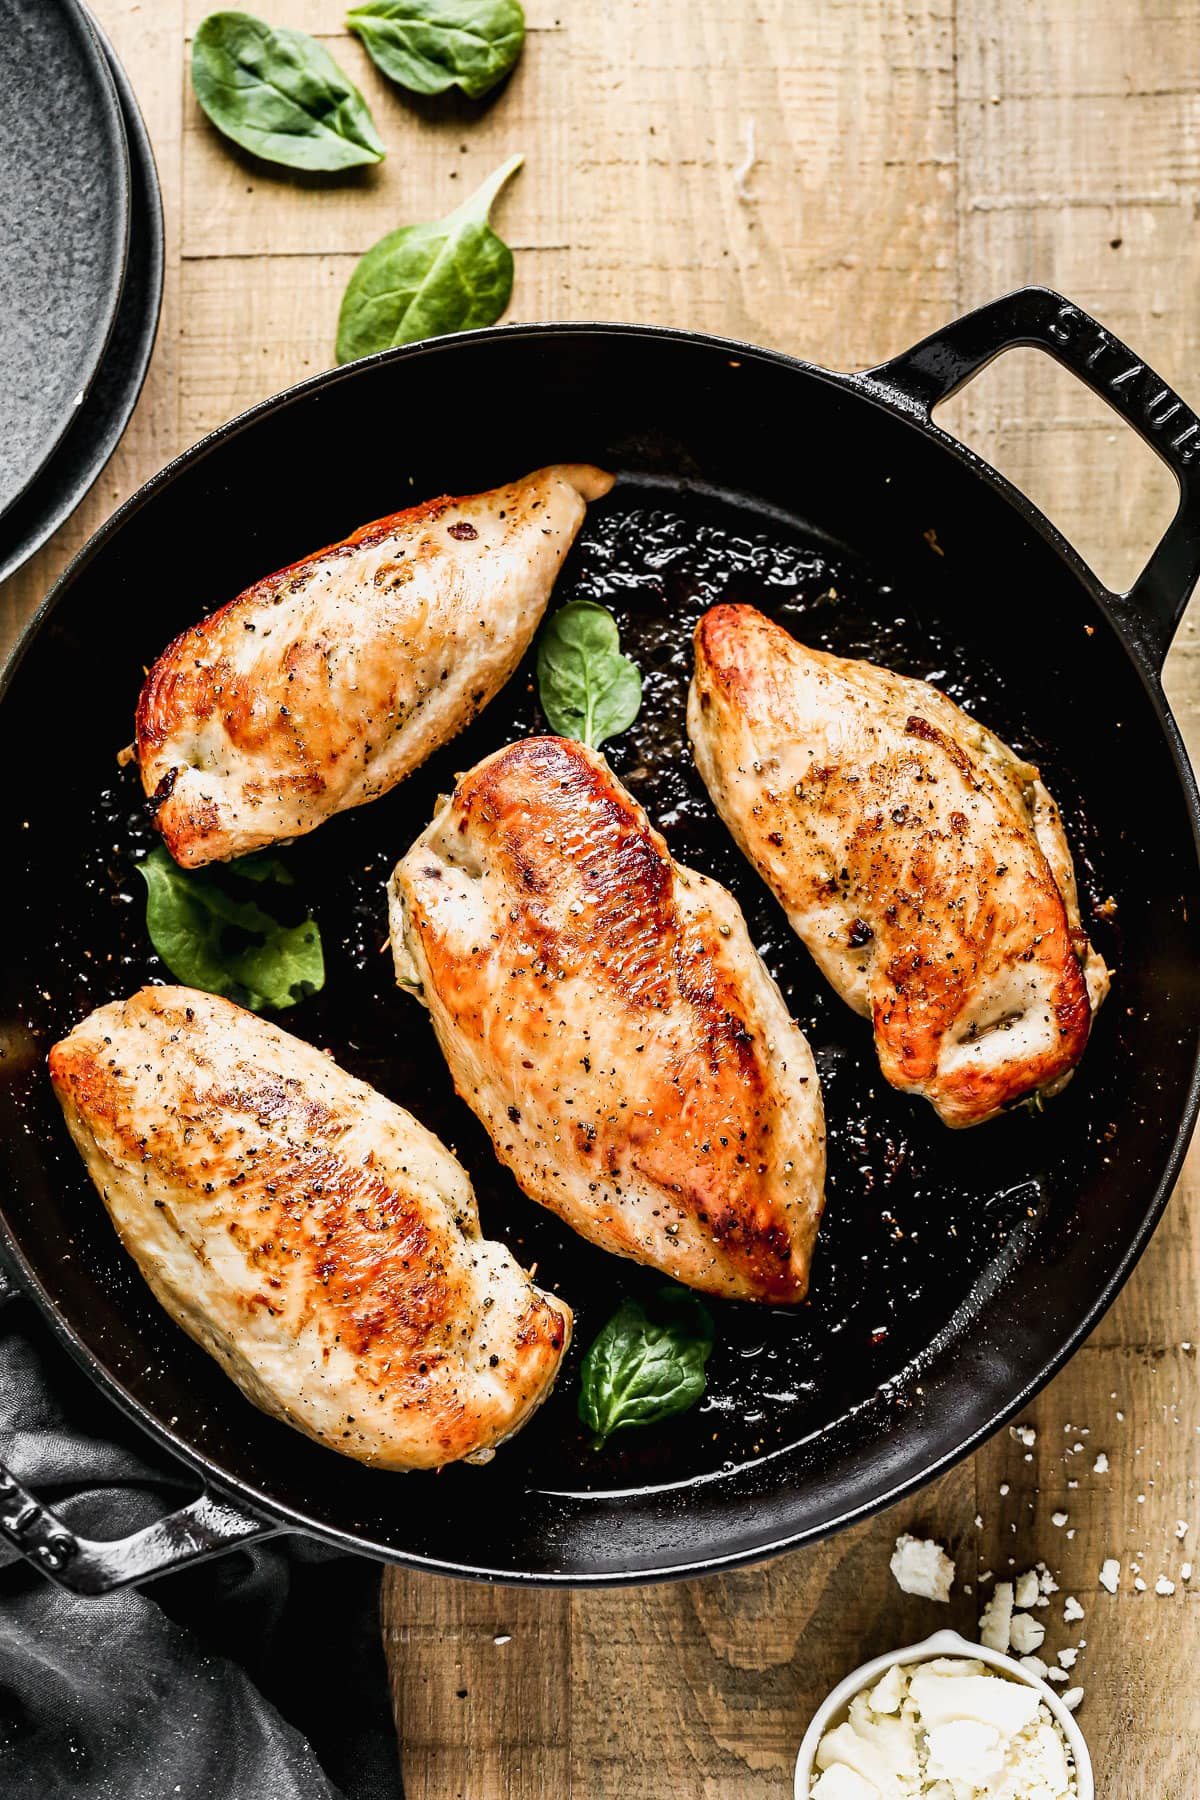 Four spinach stuffed chicken breasts in a skillet